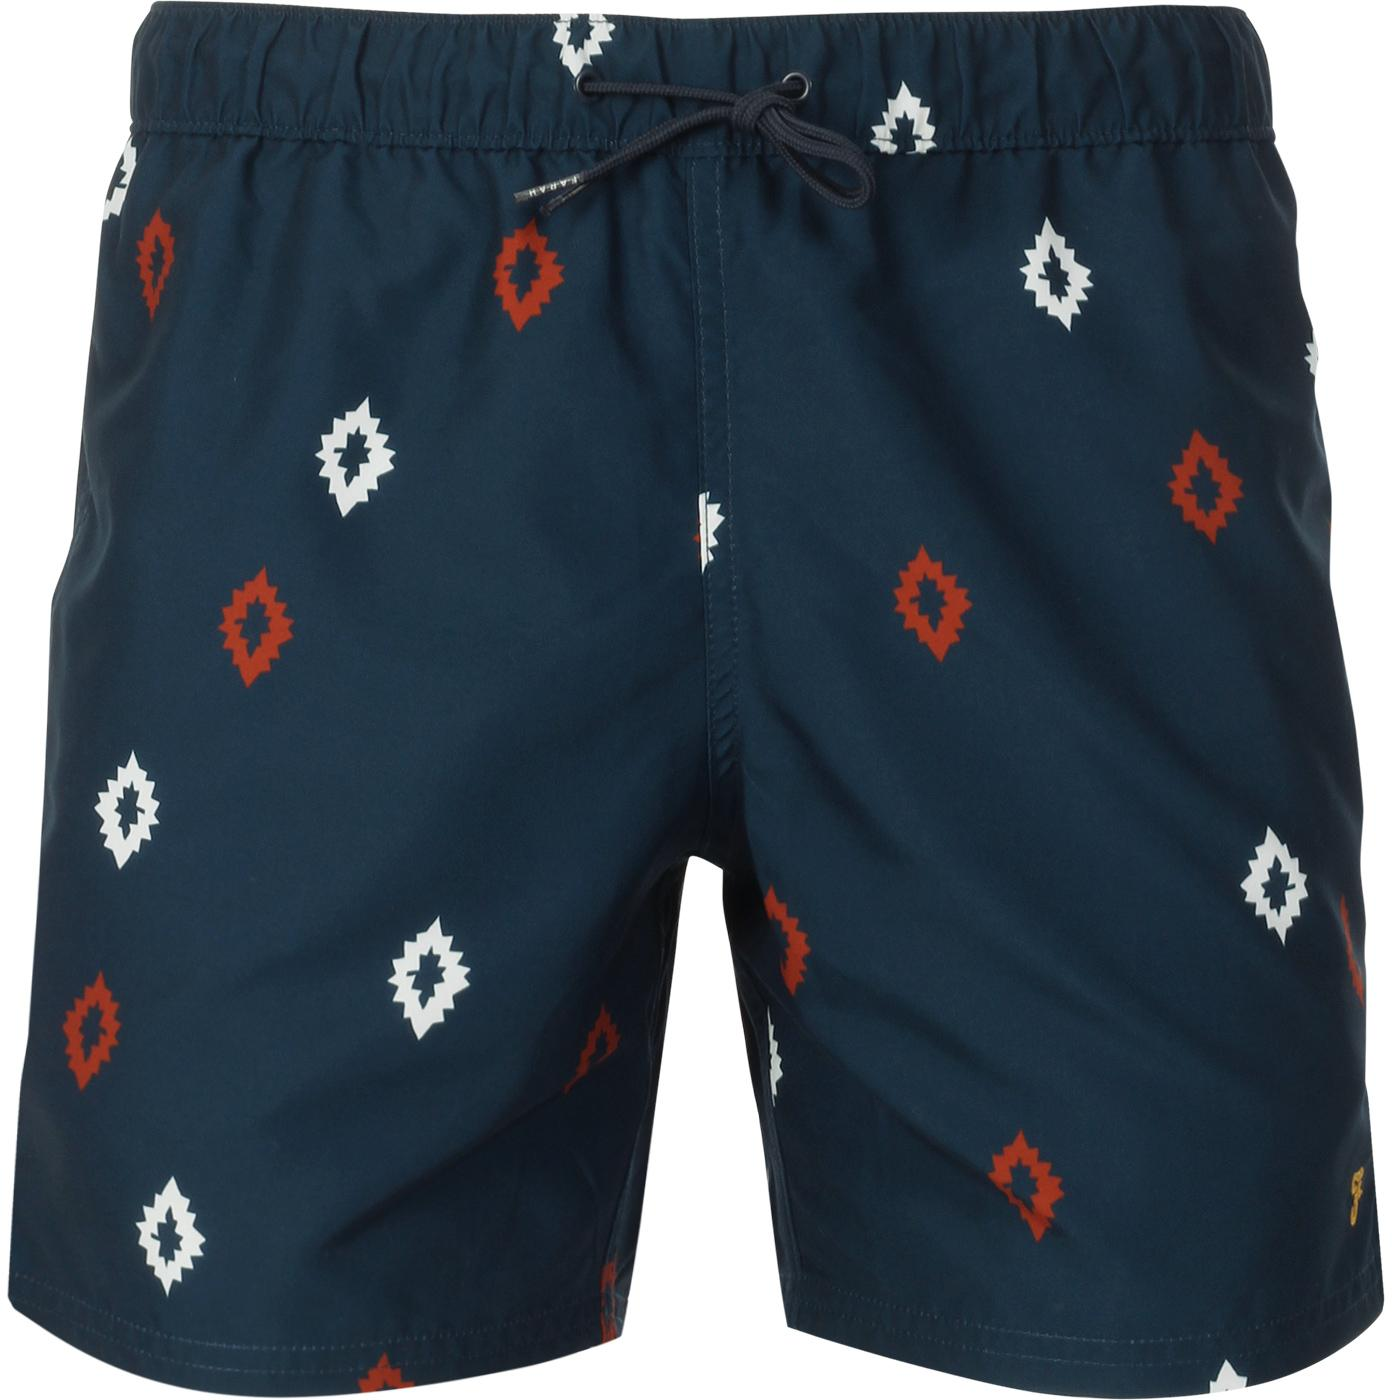 Colbert FARAH 100 Retro Diamond Swim Shorts (Teal)